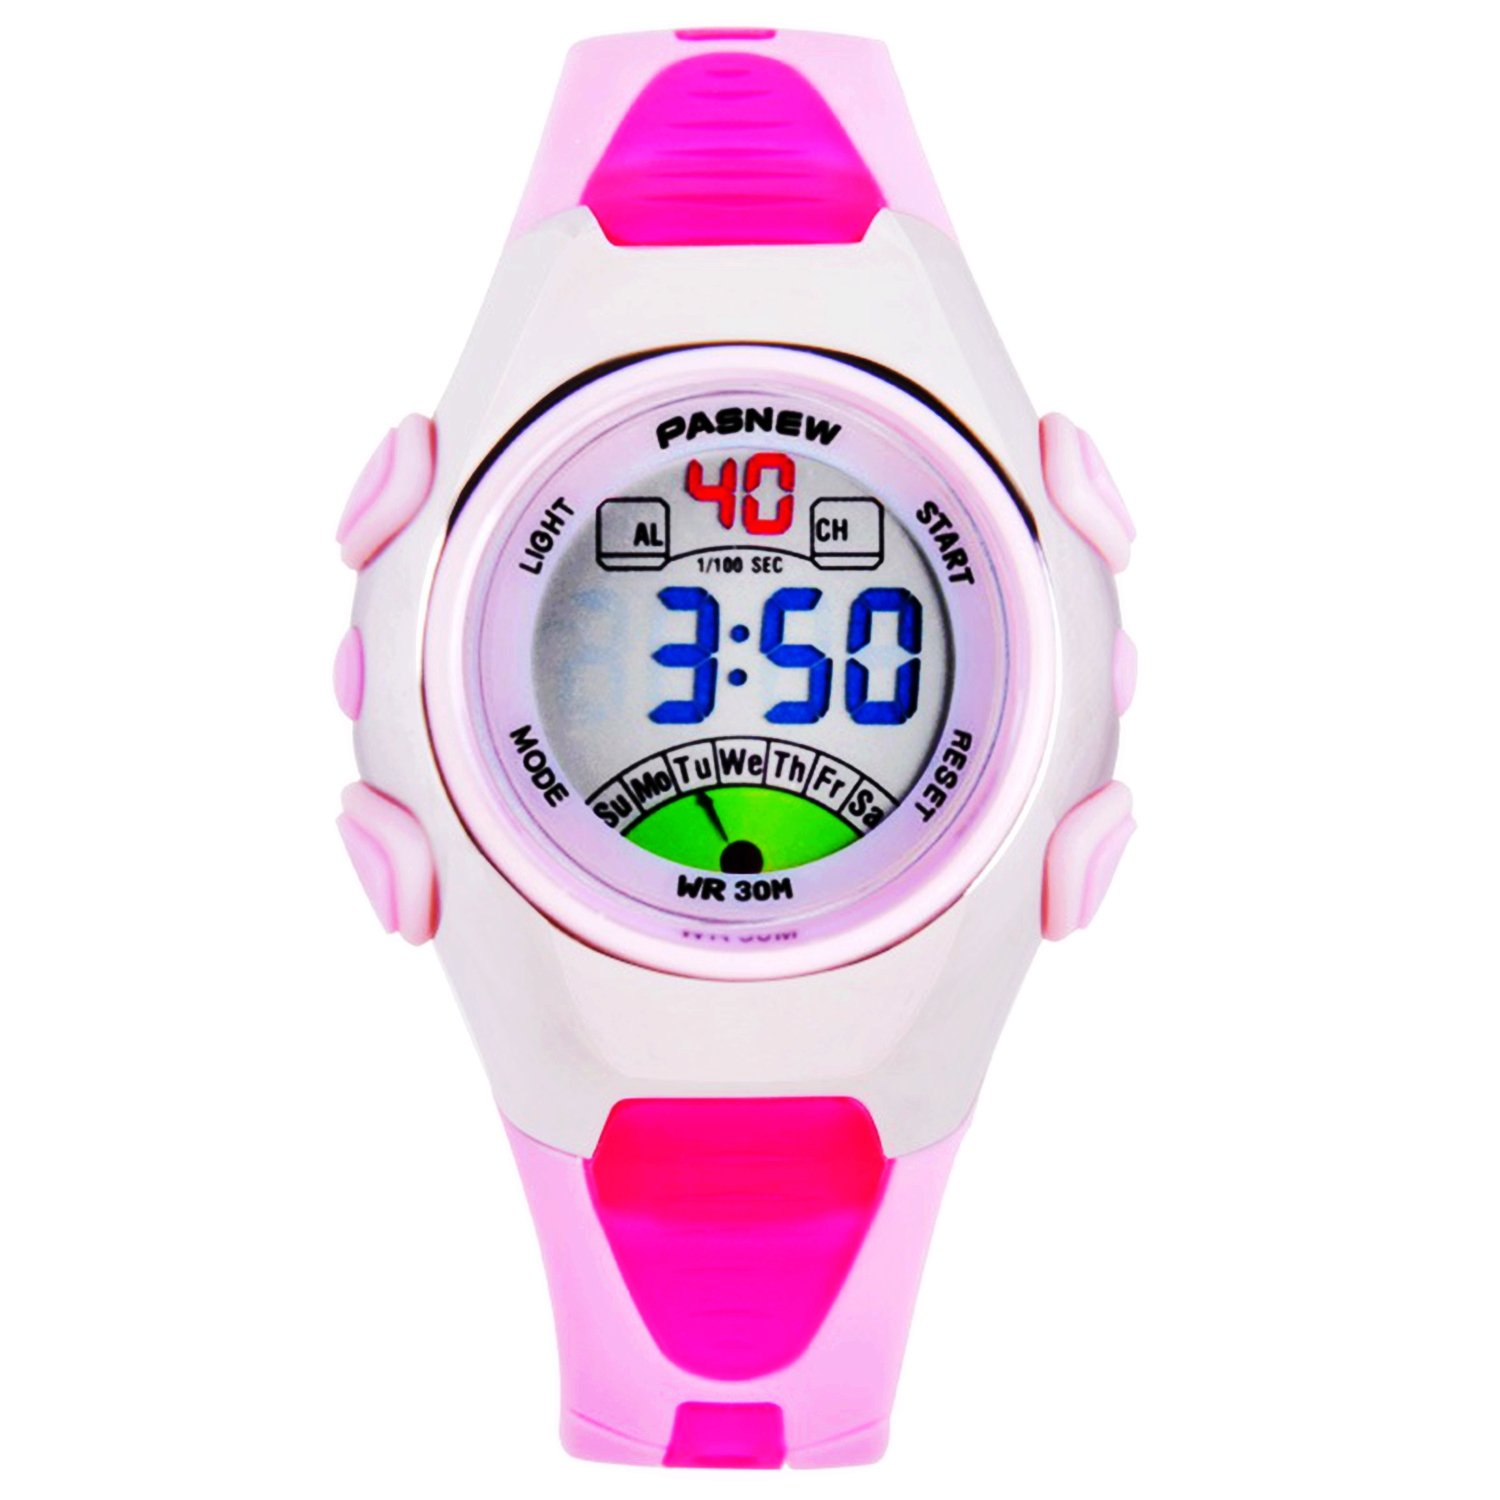 Kids LED Waterproof Sport Digital Watch With Alarm Clcok Stopwatch Calendar Watches For Girls Boys Pink